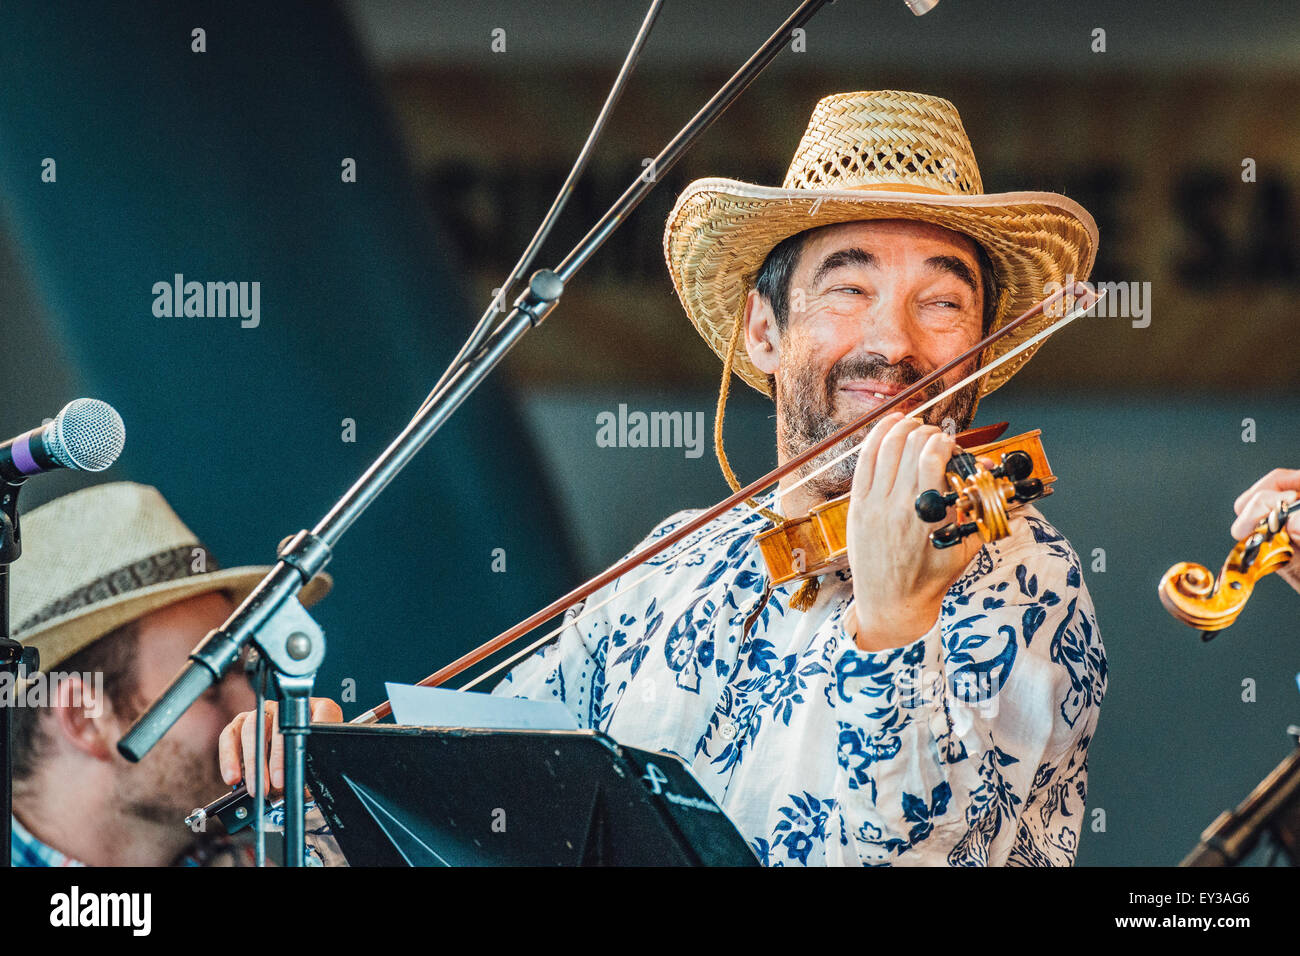 Gateshead, UK - 18th July 2015 - Sir Bradley Creswick & the RNS Allstar Strings performing at the Summertyne - Stock Image